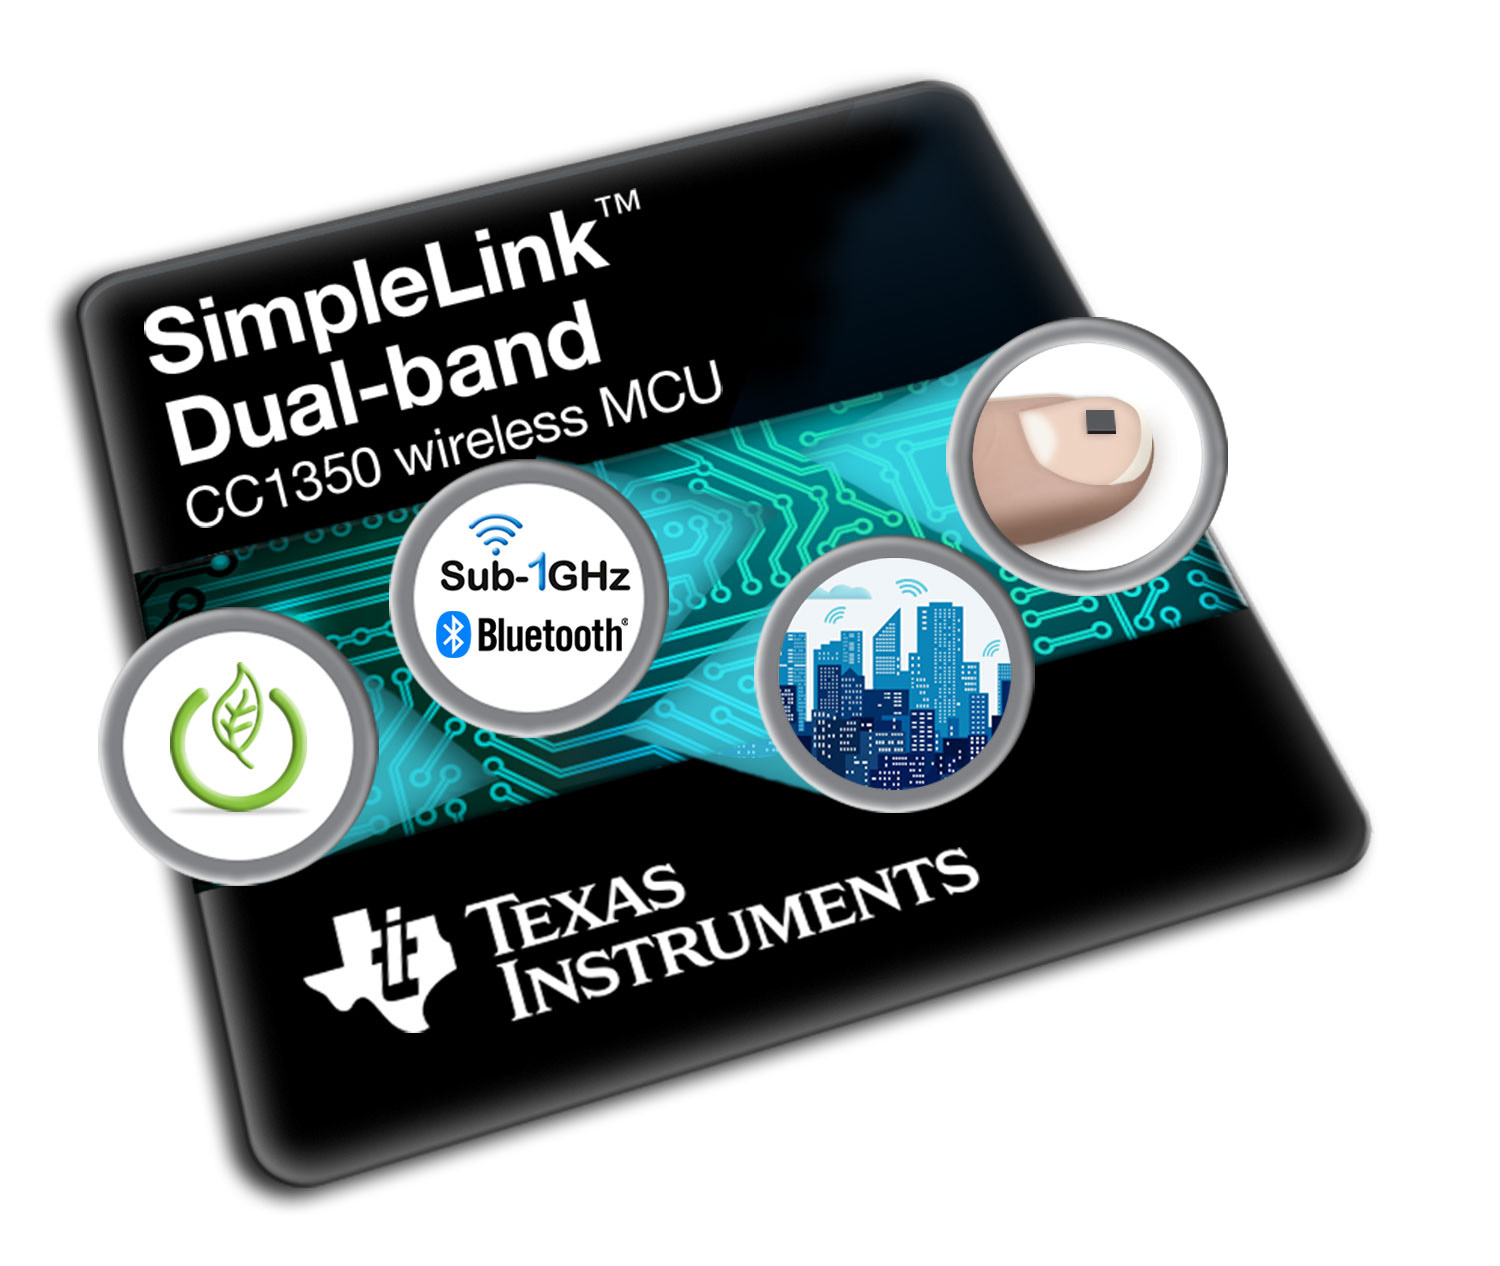 The SimpleLink™ dual-band CC1350 wireless MCU for Sub-1 GHz and Bluetooth low energy connectivity on a single chip